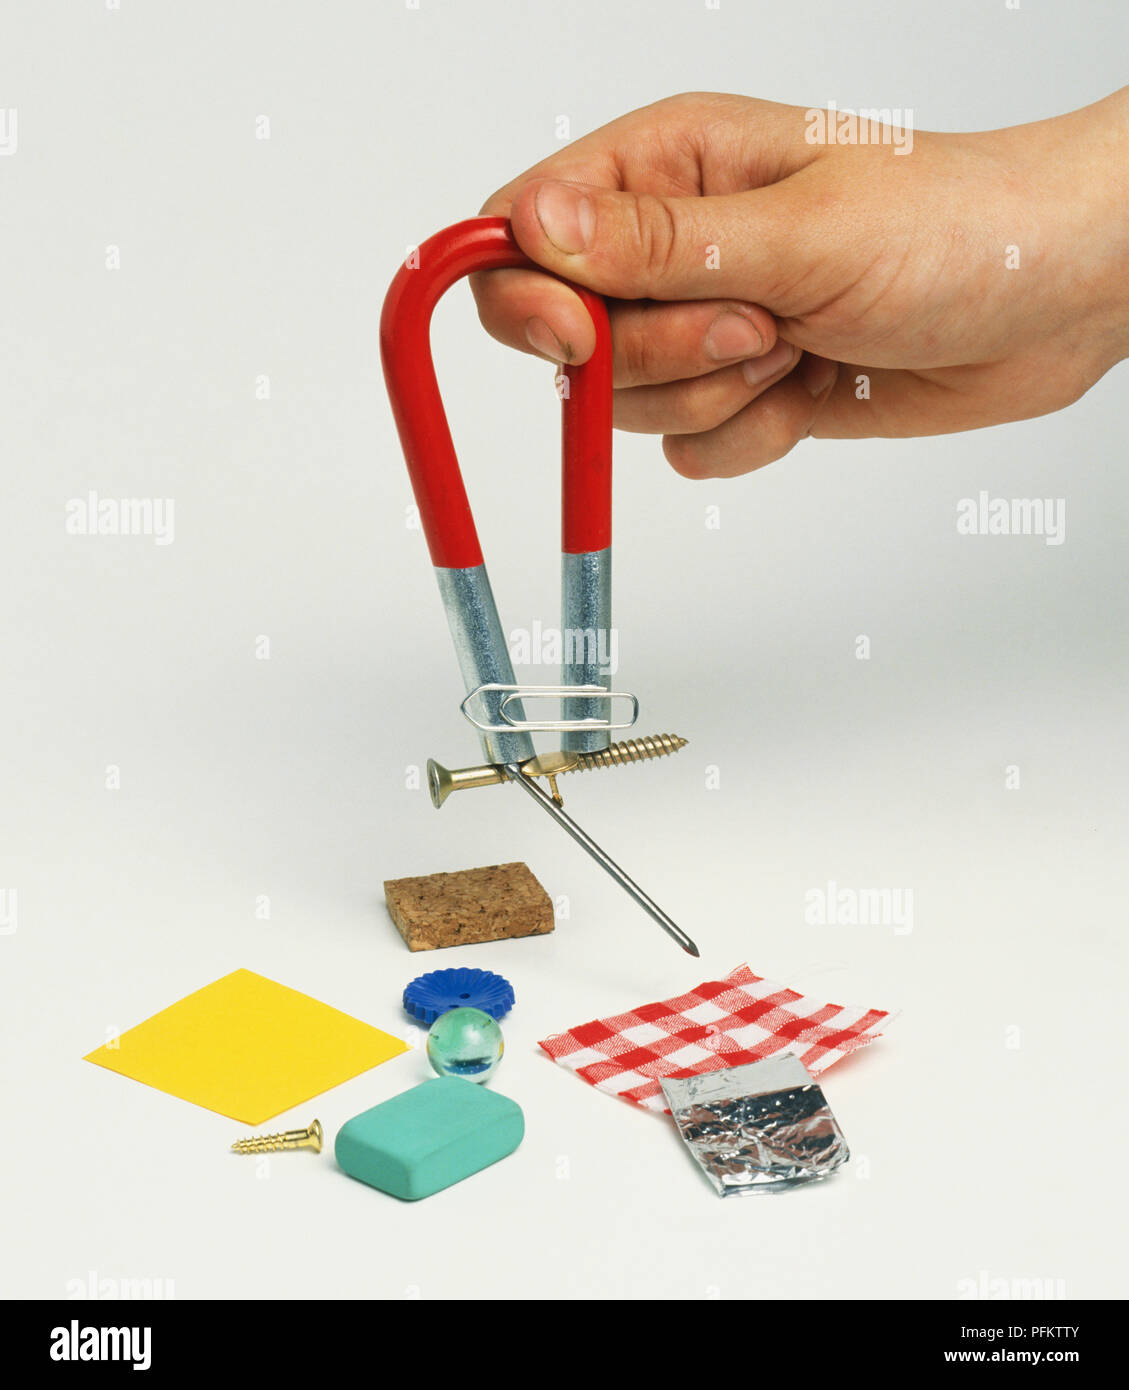 Picking Up Safety Pin Screw And Nail With A Magnet